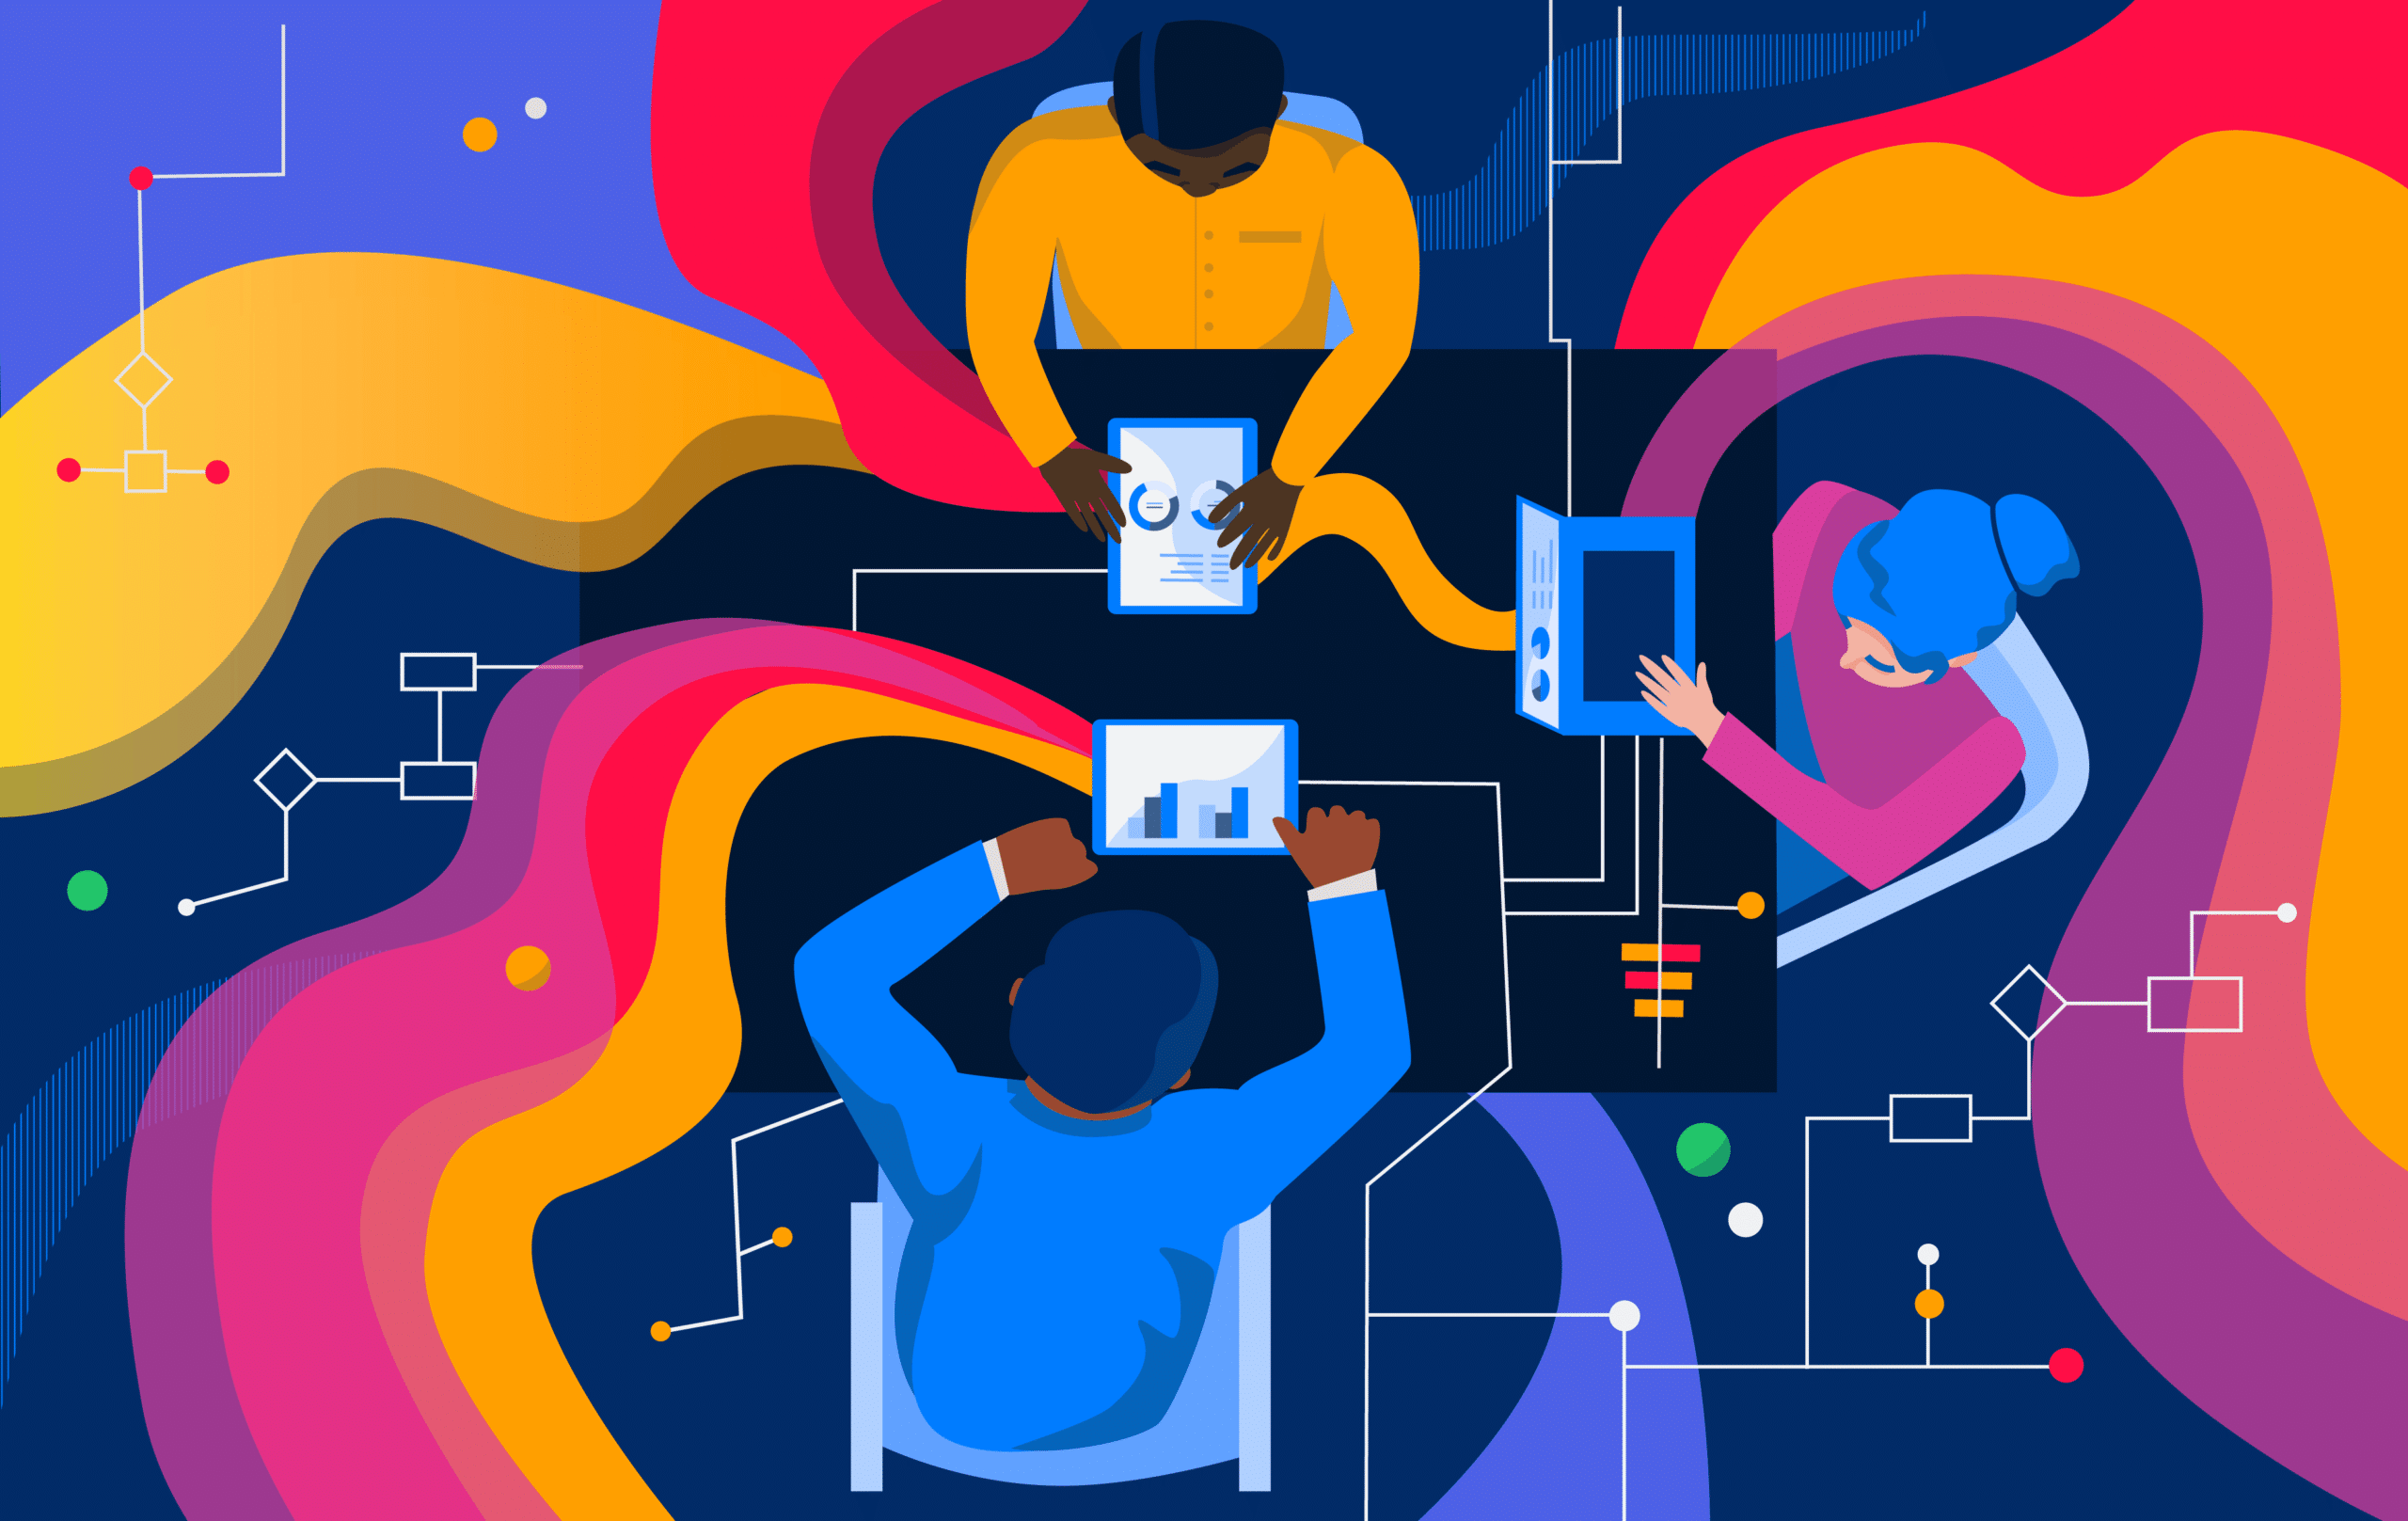 An abstract illustration of an enterprise connecting via AI.